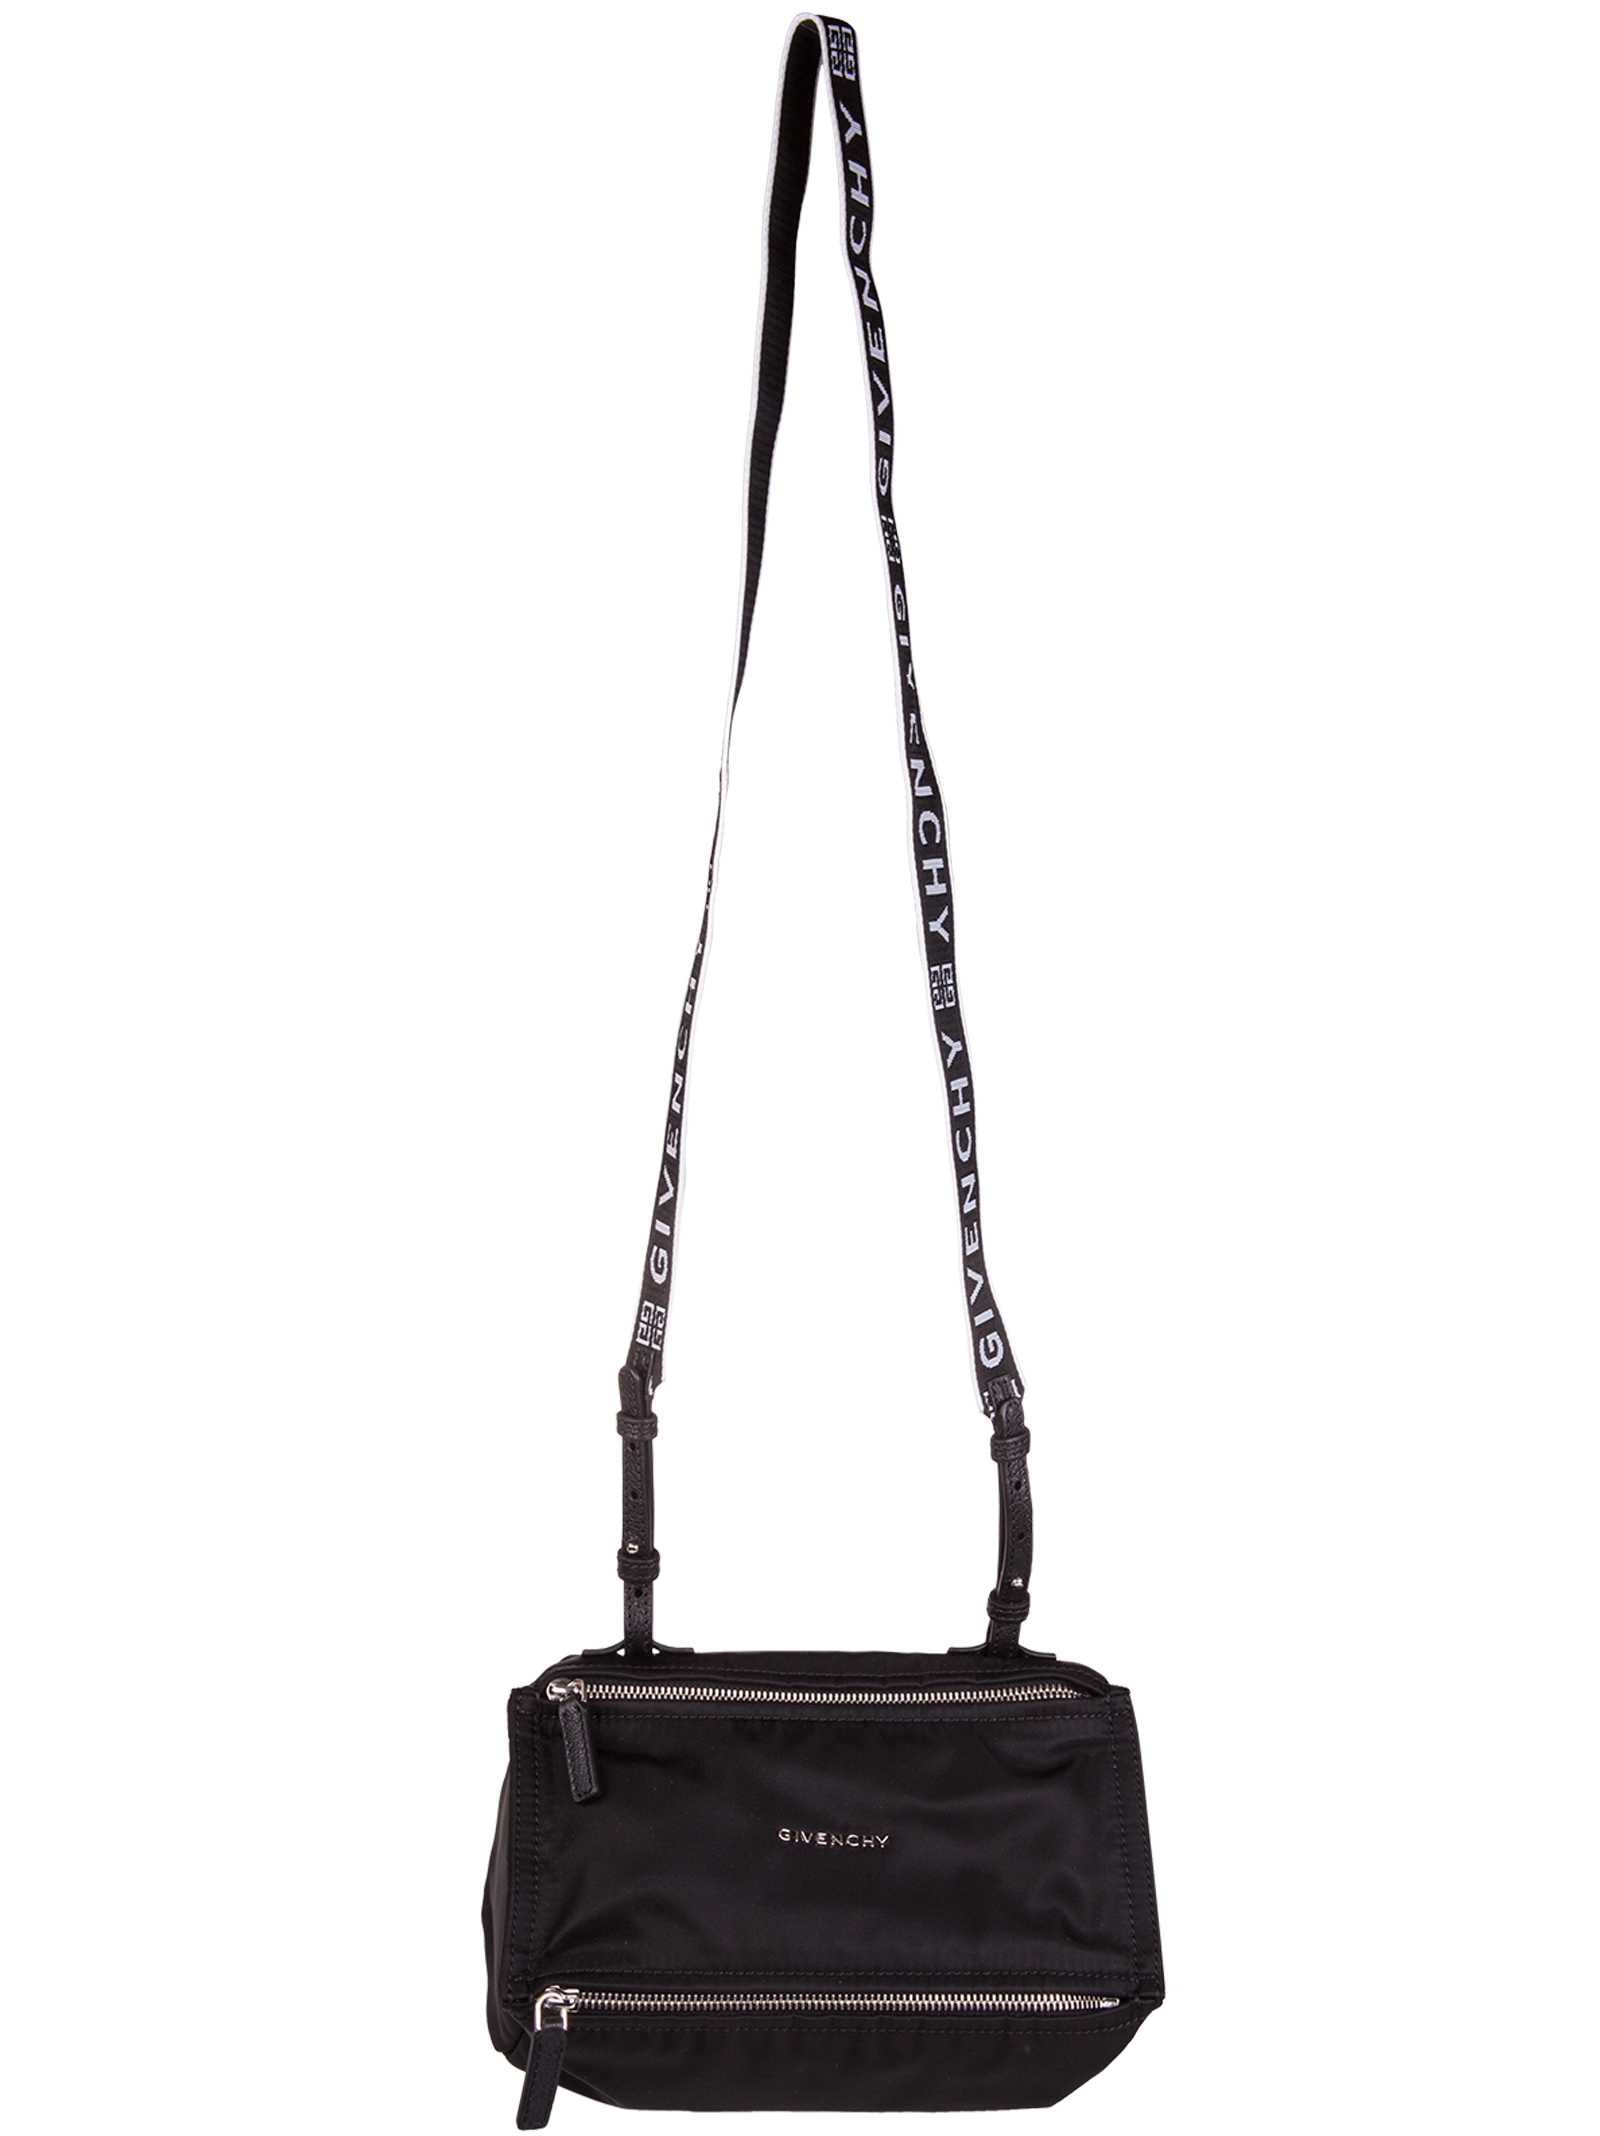 4e7be5a024 Givenchy. Black *ICON Pandora Mini shoulder bag in nylon with shoulder strap  with brand logos